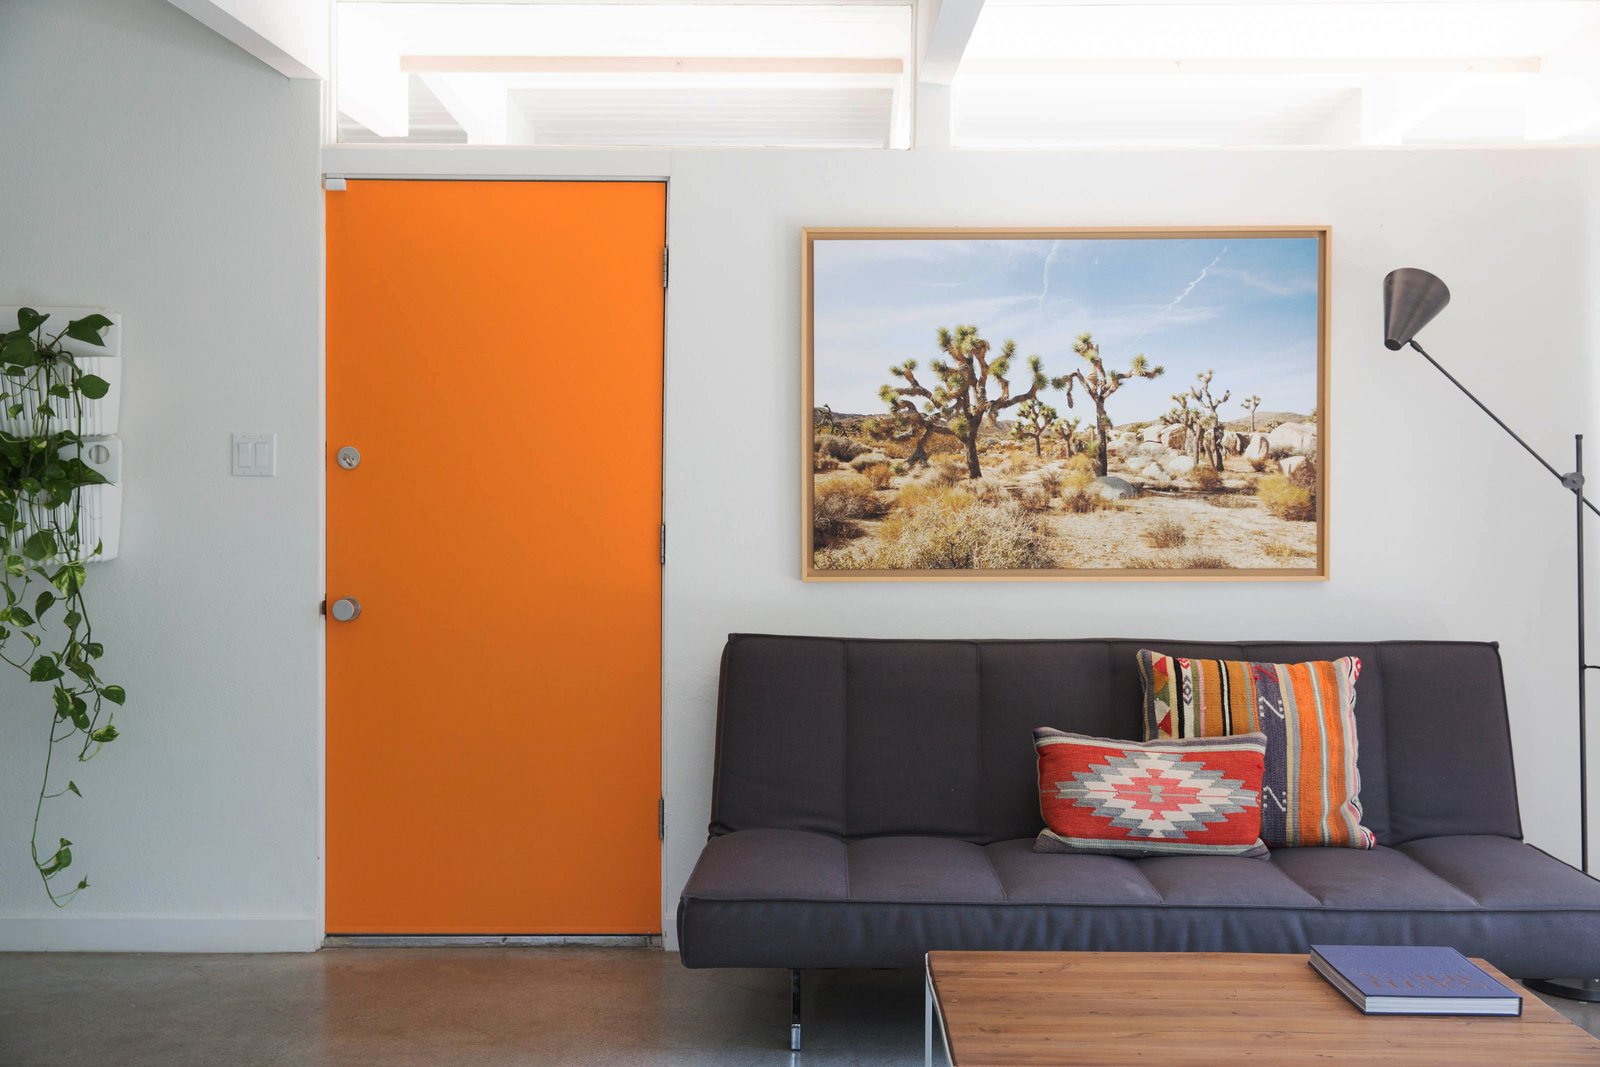 The Amado living area with mid century style and an orange door leading outdoors.